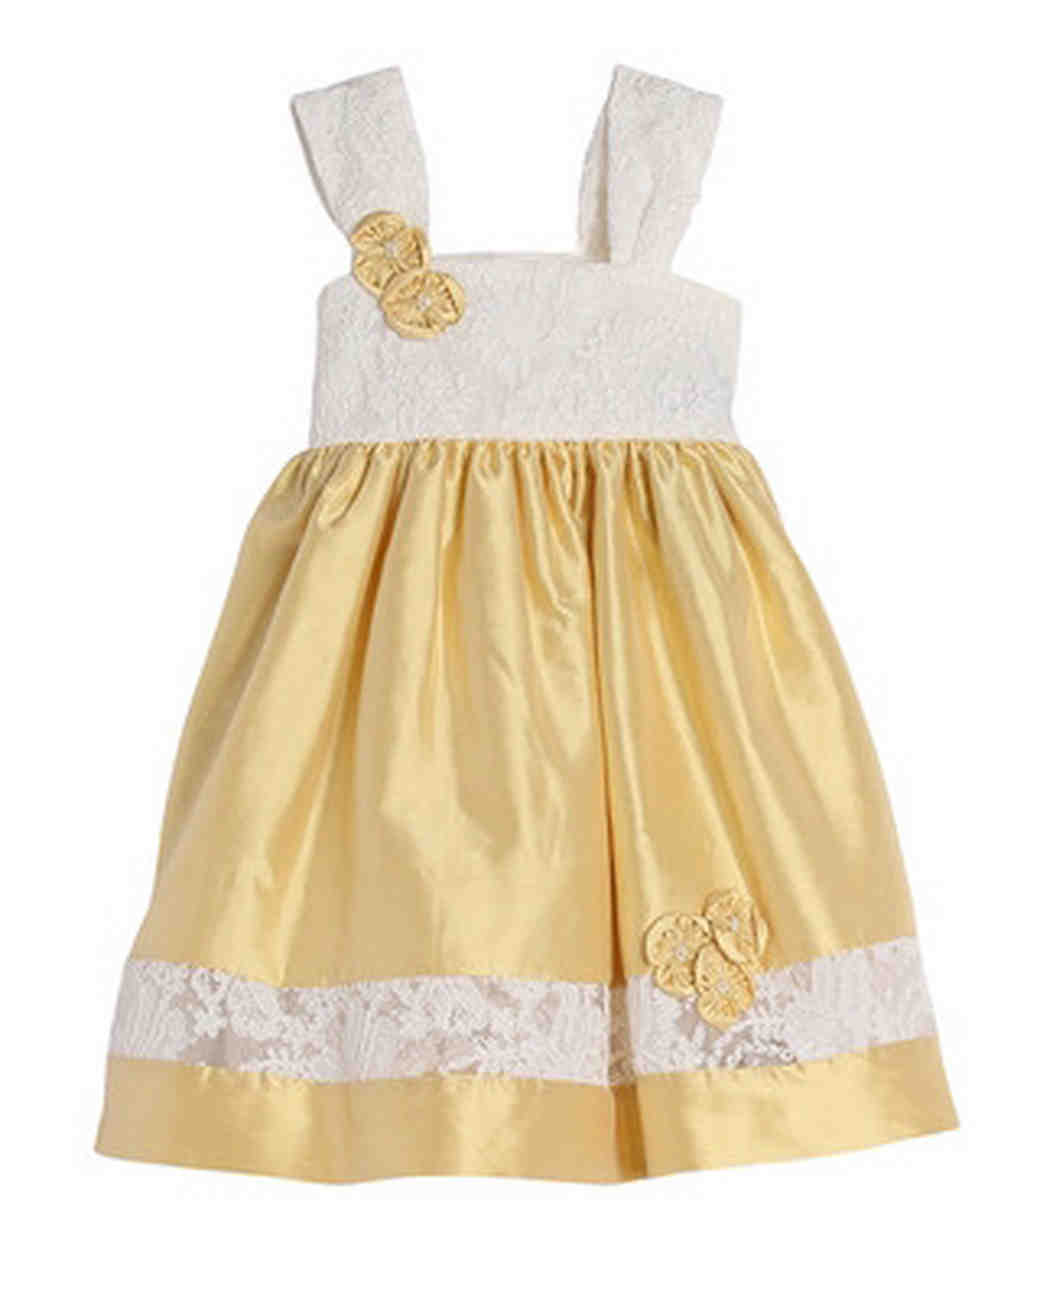 24 yellow flower girl dresses that are perfect for any season 24 yellow flower girl dresses that are perfect for any season martha stewart weddings mightylinksfo